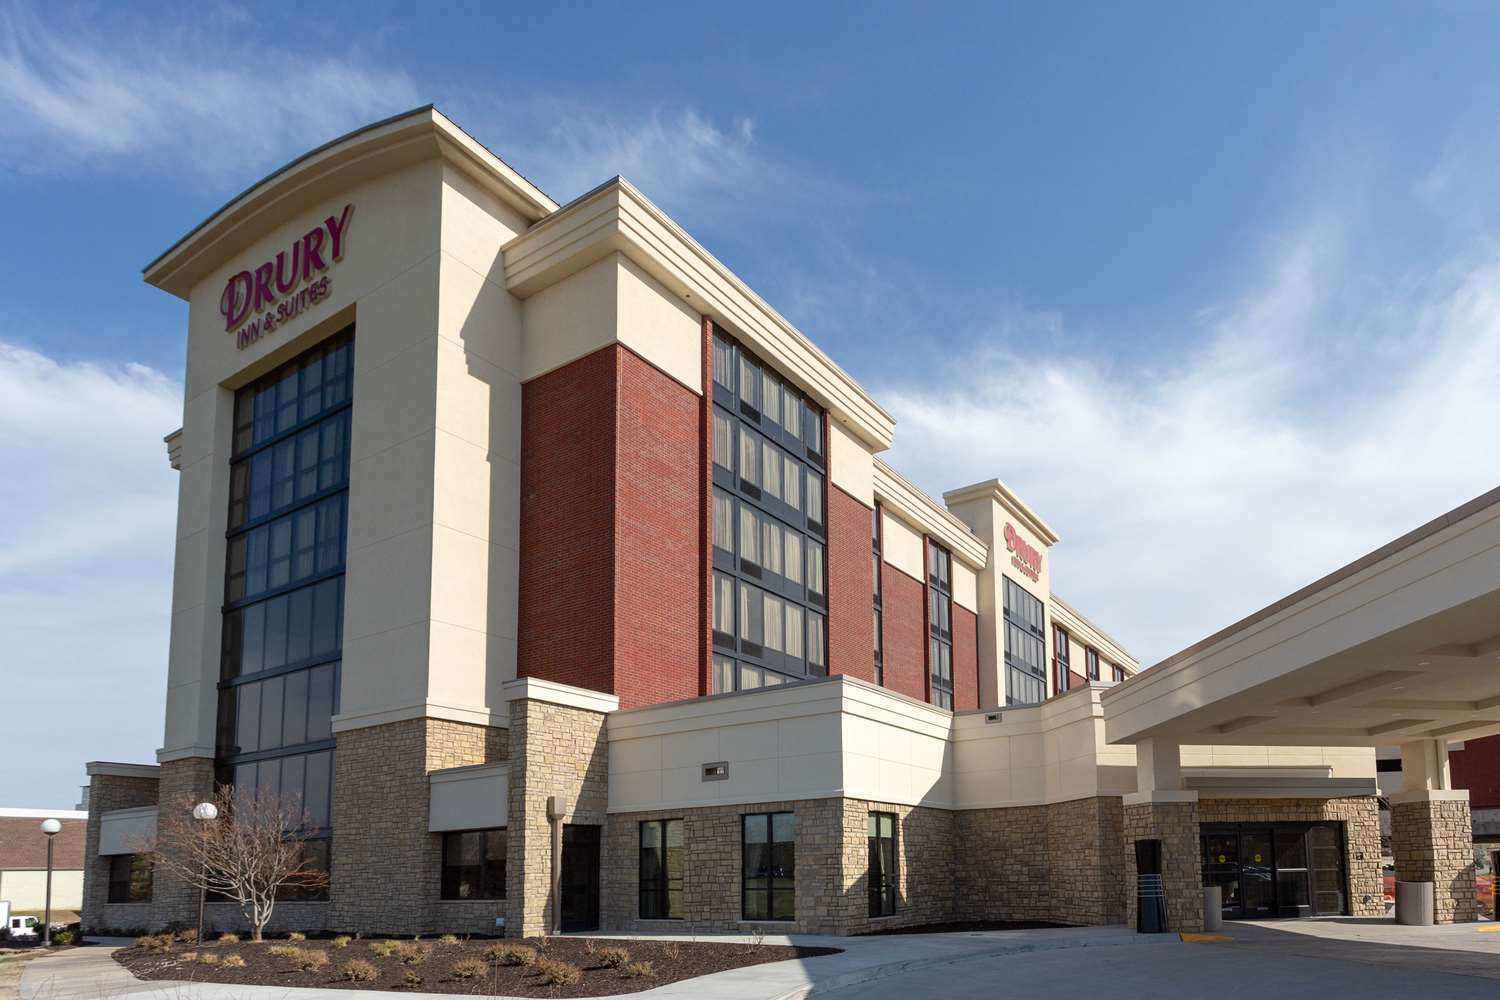 Drury Inn & Suites Overland Park